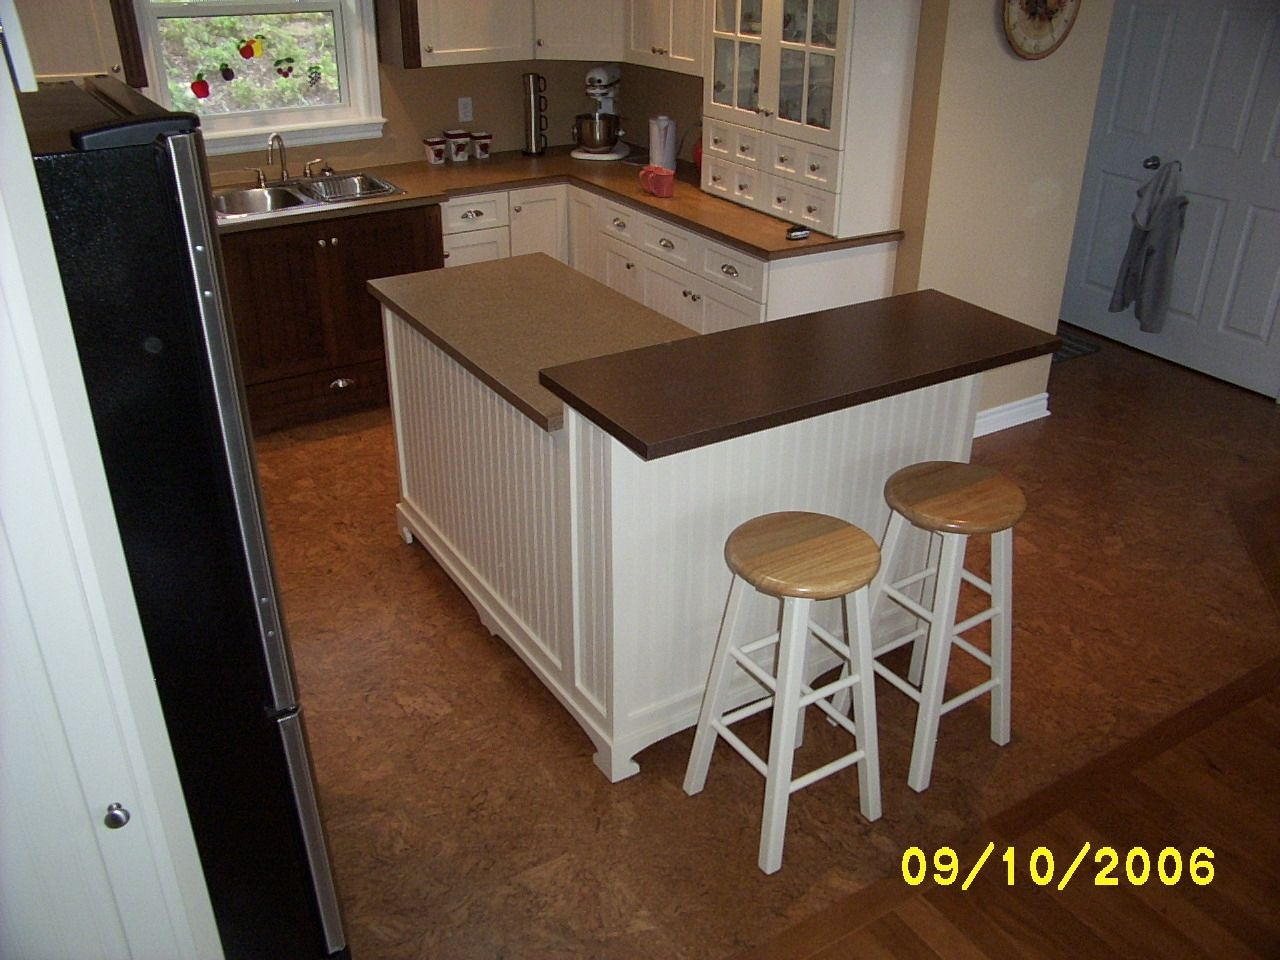 homemade kitchen island ideas - Yahoo Image Search Results | Kitchen ...